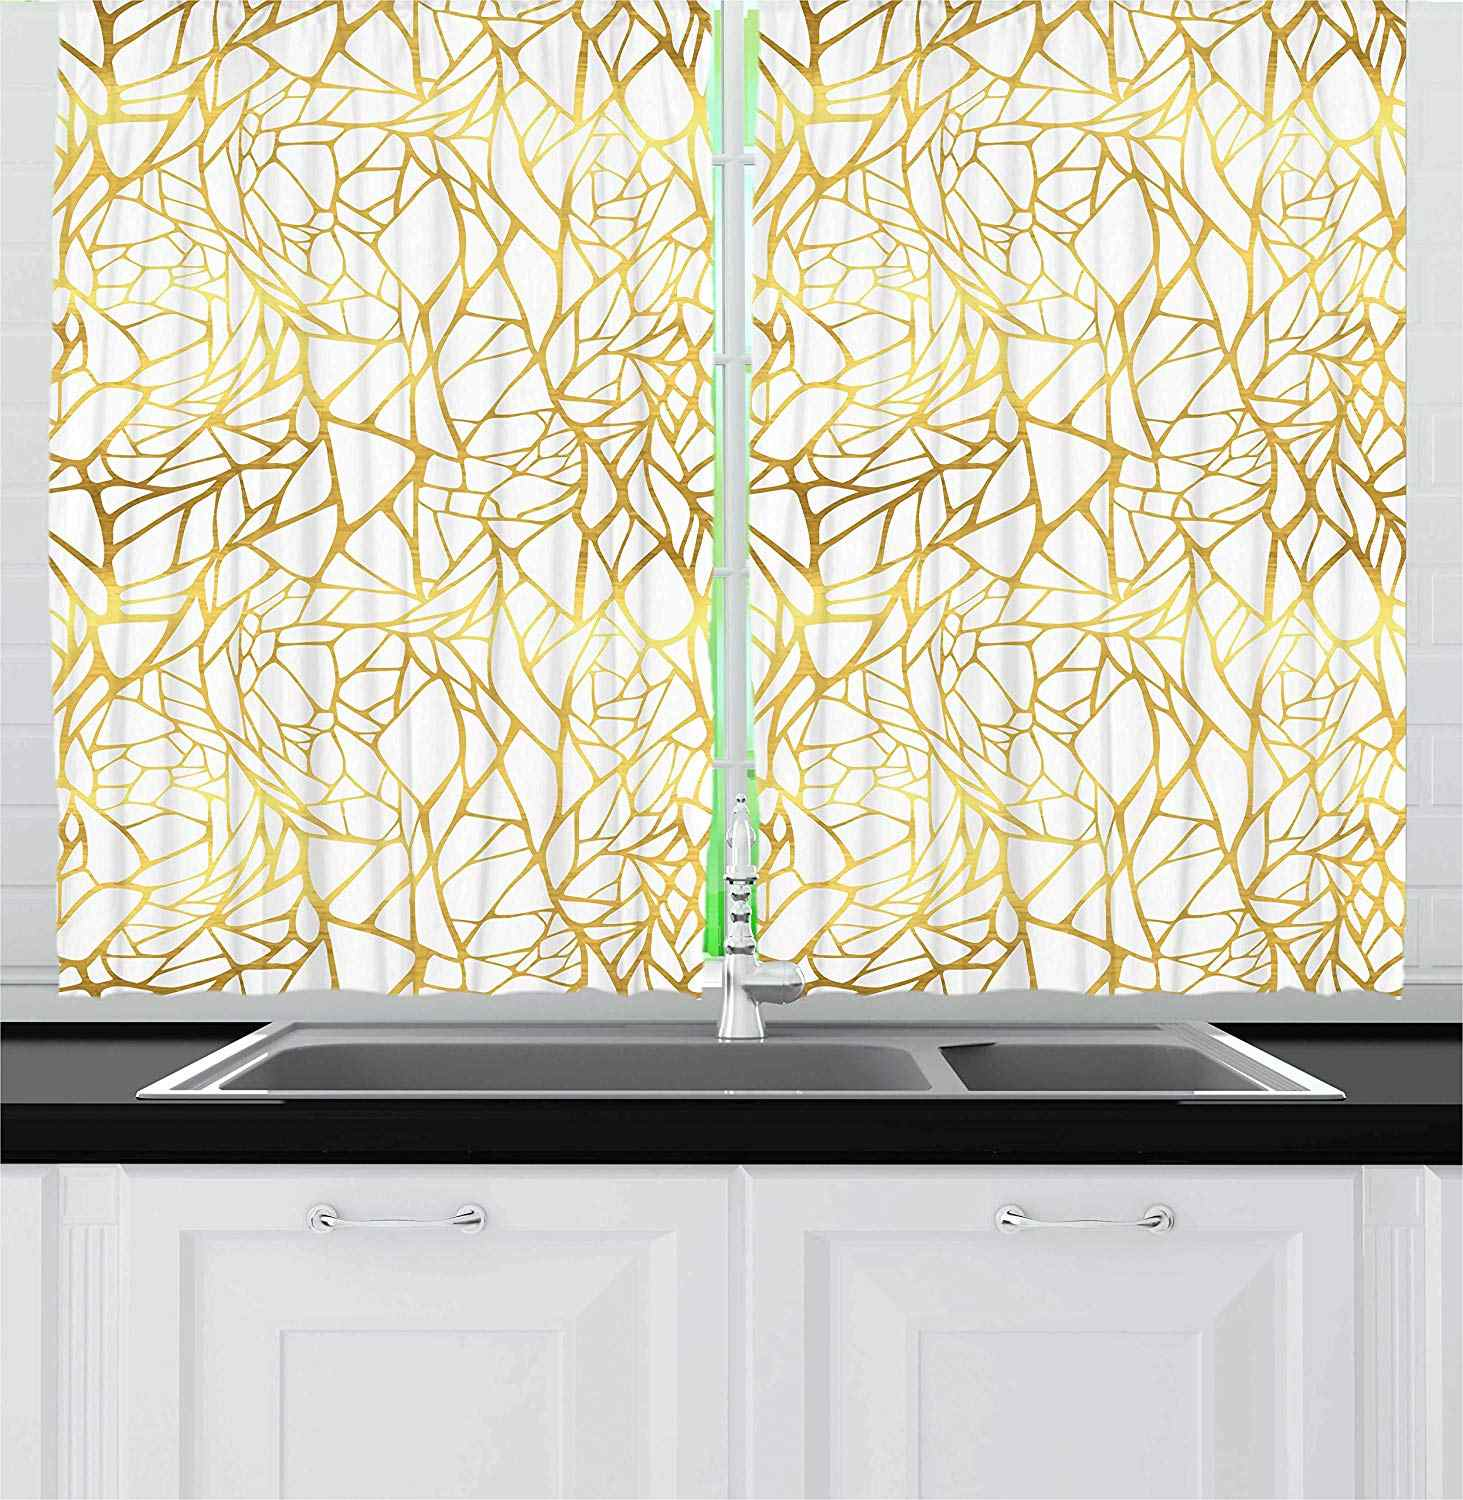 Contemporary Kitchen Curtains Abstract Ornament Exotic Animal Pattern Style Feminine Glamor Print Window Decor Panel Set Curtains Aliexpress